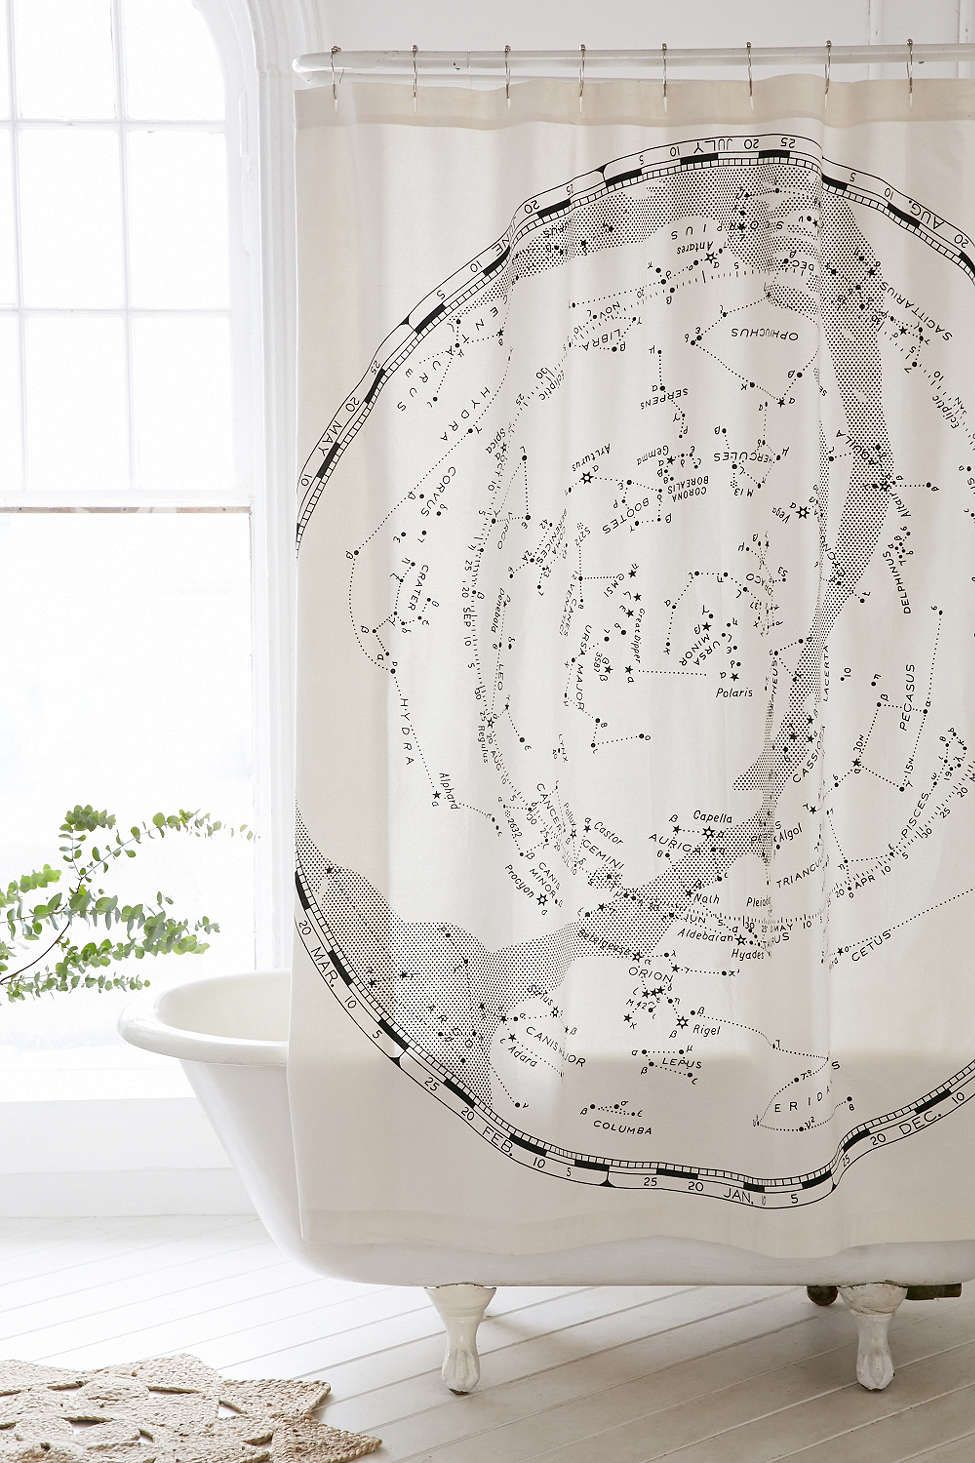 A shower curtain of the cosmos. That would be so amazing to look at ...